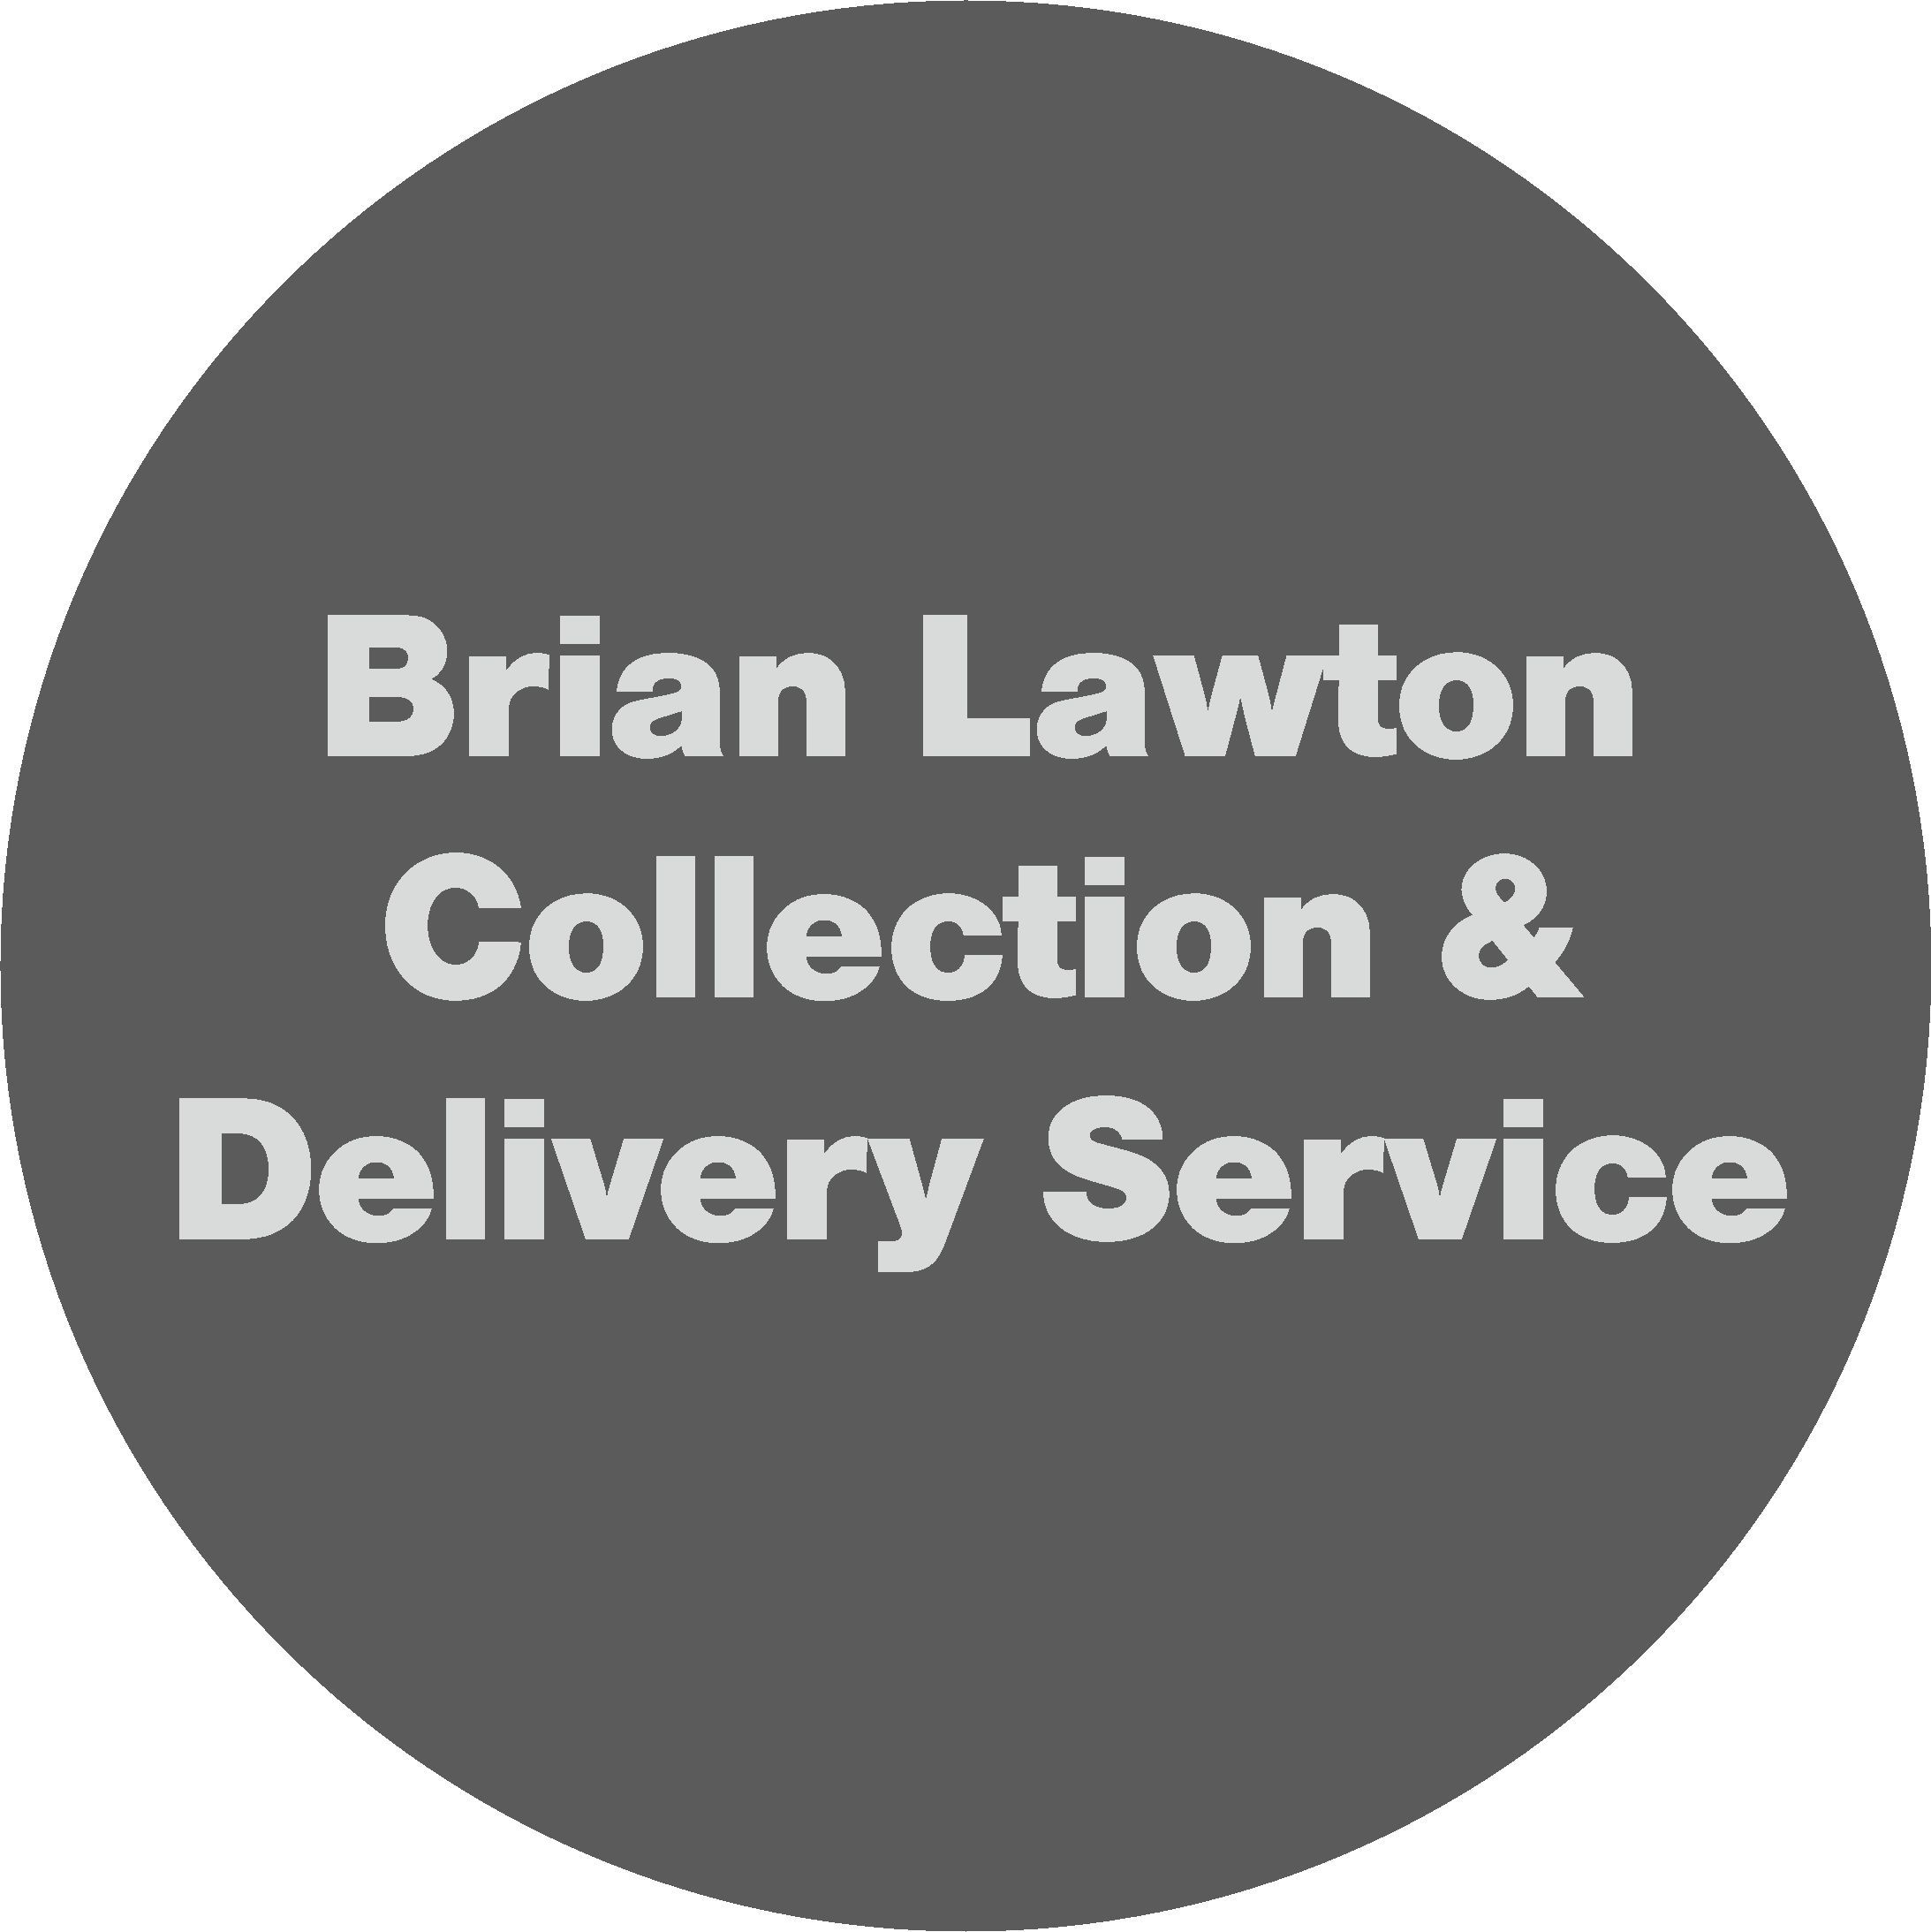 Brian Lawton Collection & Delivery Service